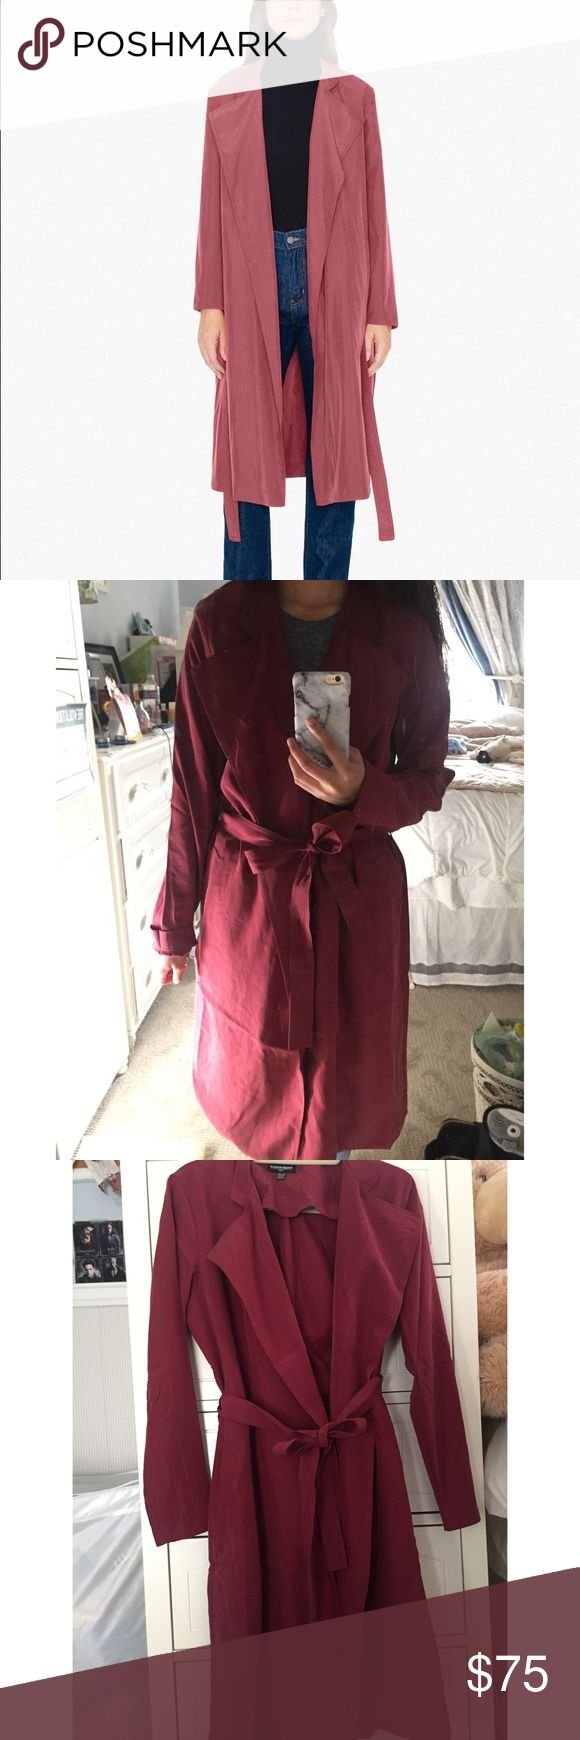 """NWOT American Apparel Dylan Trench Cabernet XS/S Gorgeous Cabernet color ❤❤ NWOT Dylan Trench from AA! Size: XS/S. Still has packaging that I received it in the mail with! Perfect condition, never worn (only to try on). My measurements: 5""""1', waist 25 in, 100 lbs, and size S in AA. This fits slightly oversized on me, but still works!  ACCEPTING REASONABLE OFFERS American Apparel Jackets & Coats Trench Coats"""